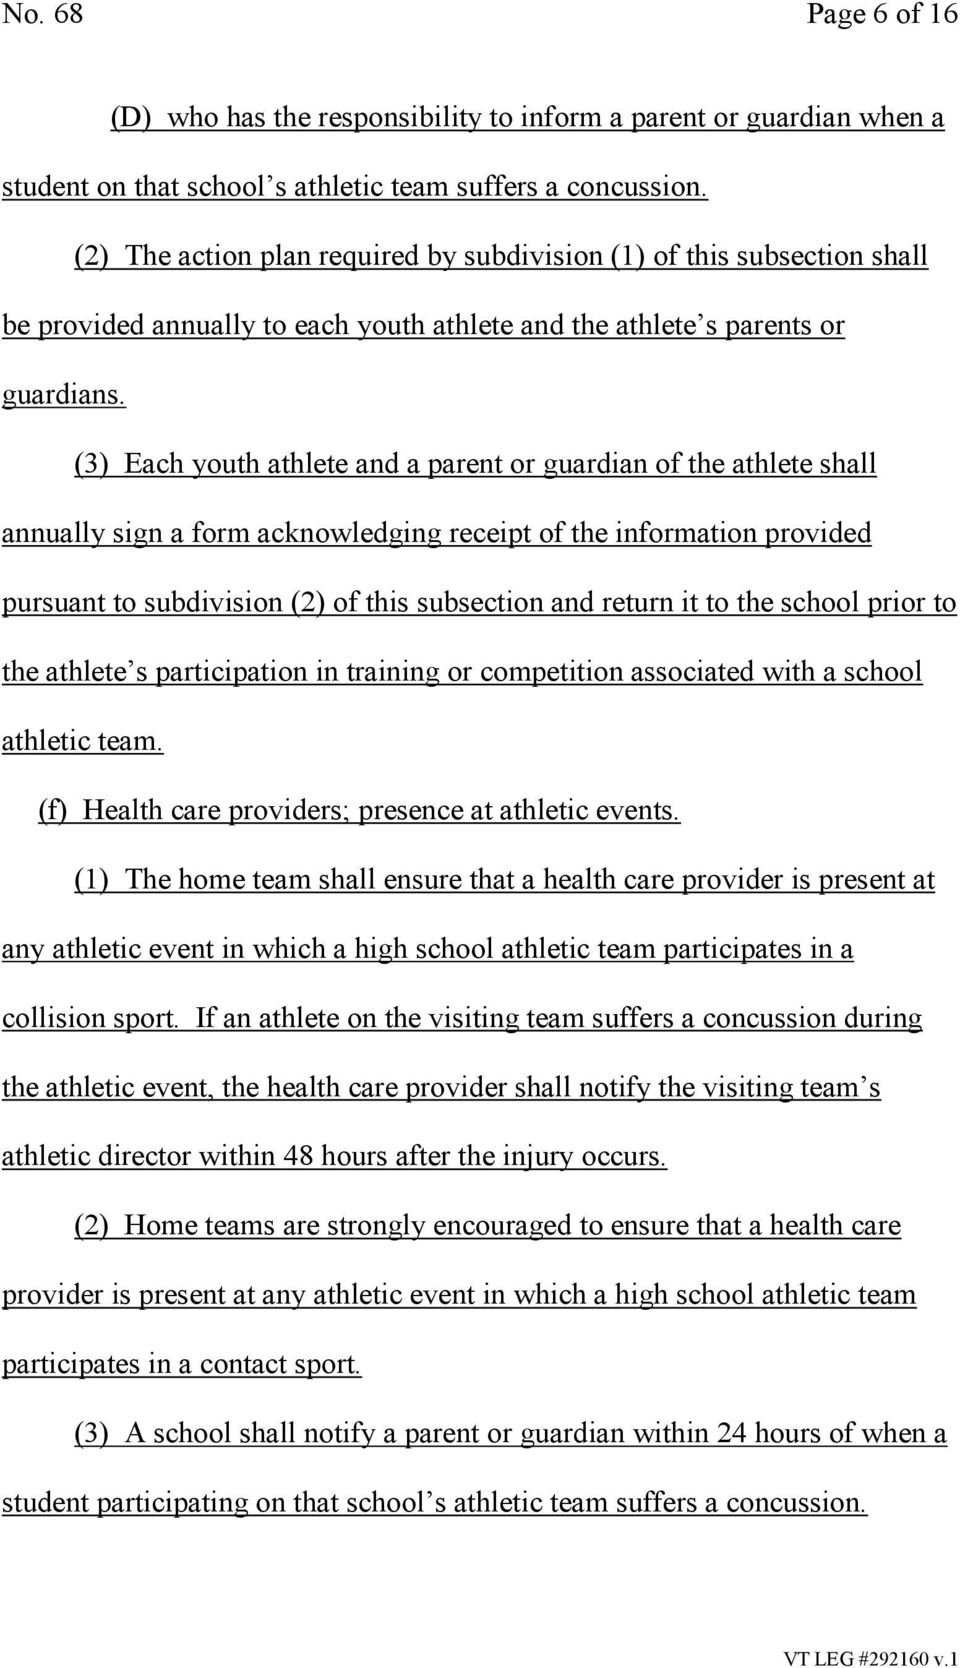 (3) Each youth athlete and a parent or guardian of the athlete shall annually sign a form acknowledging receipt of the information provided pursuant to subdivision (2) of this subsection and return